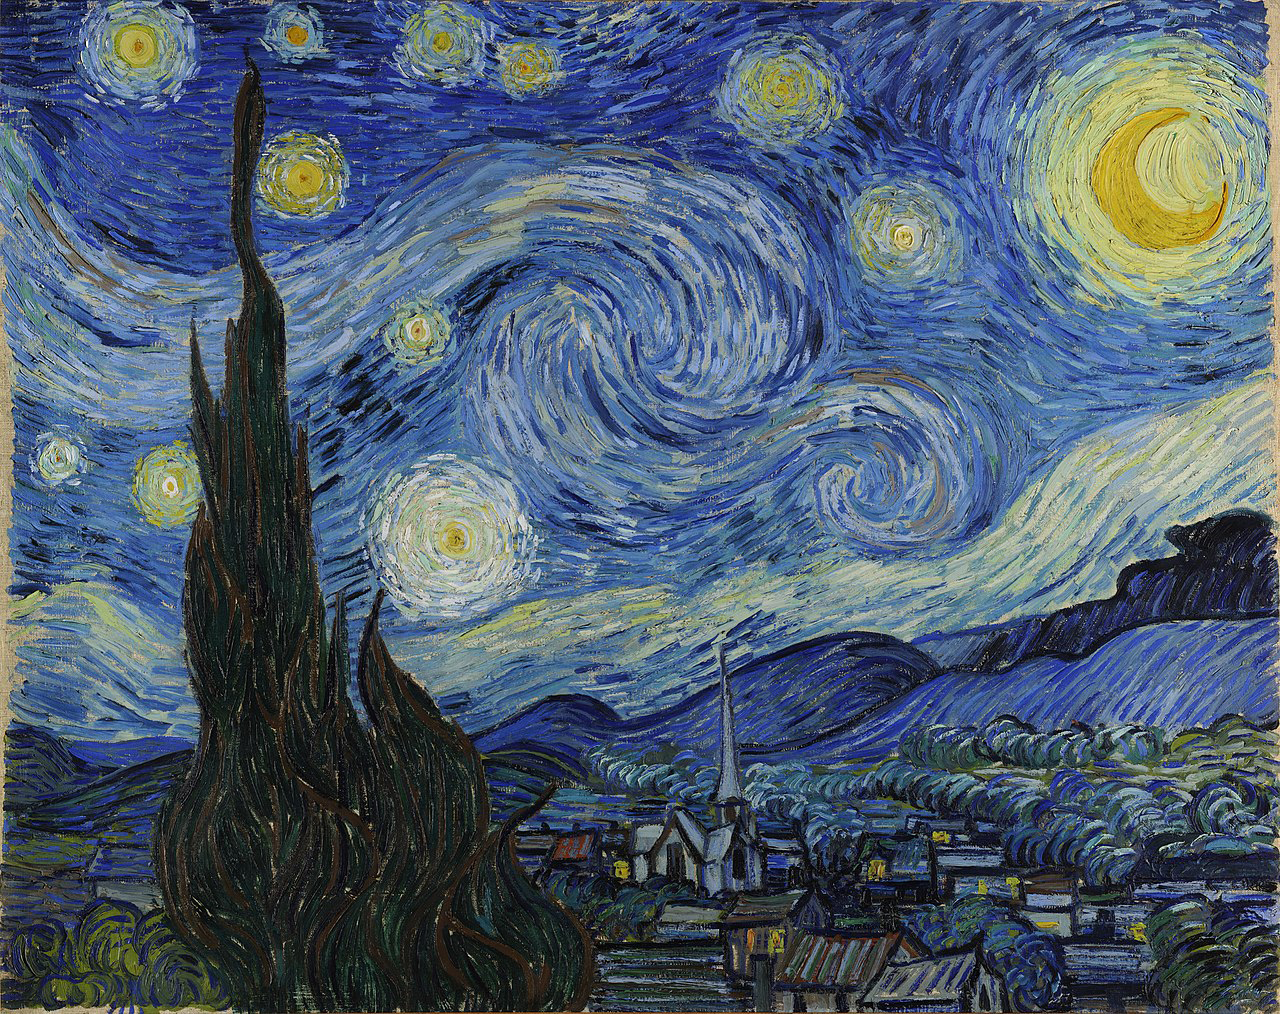 Van_Gogh_-_Starry_Night Gwiaździsta Noc